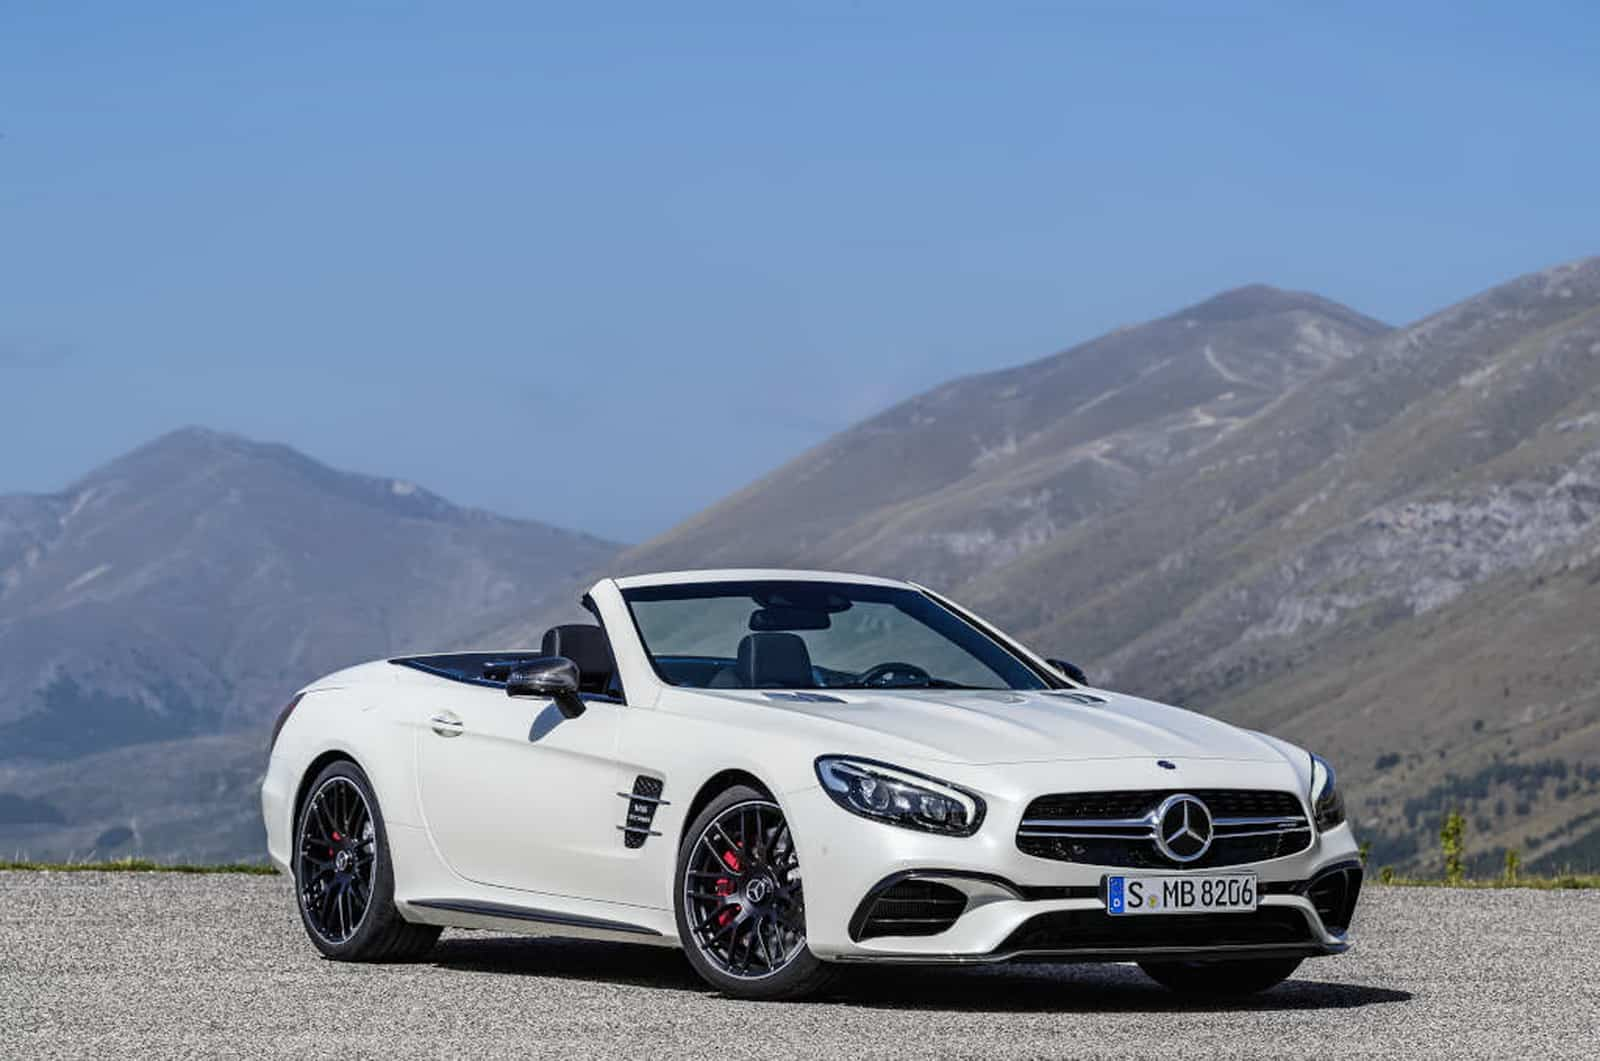 Mercedes AMG SL 63, Diamantweiß Mercedes-AMG SL 63, diamond white